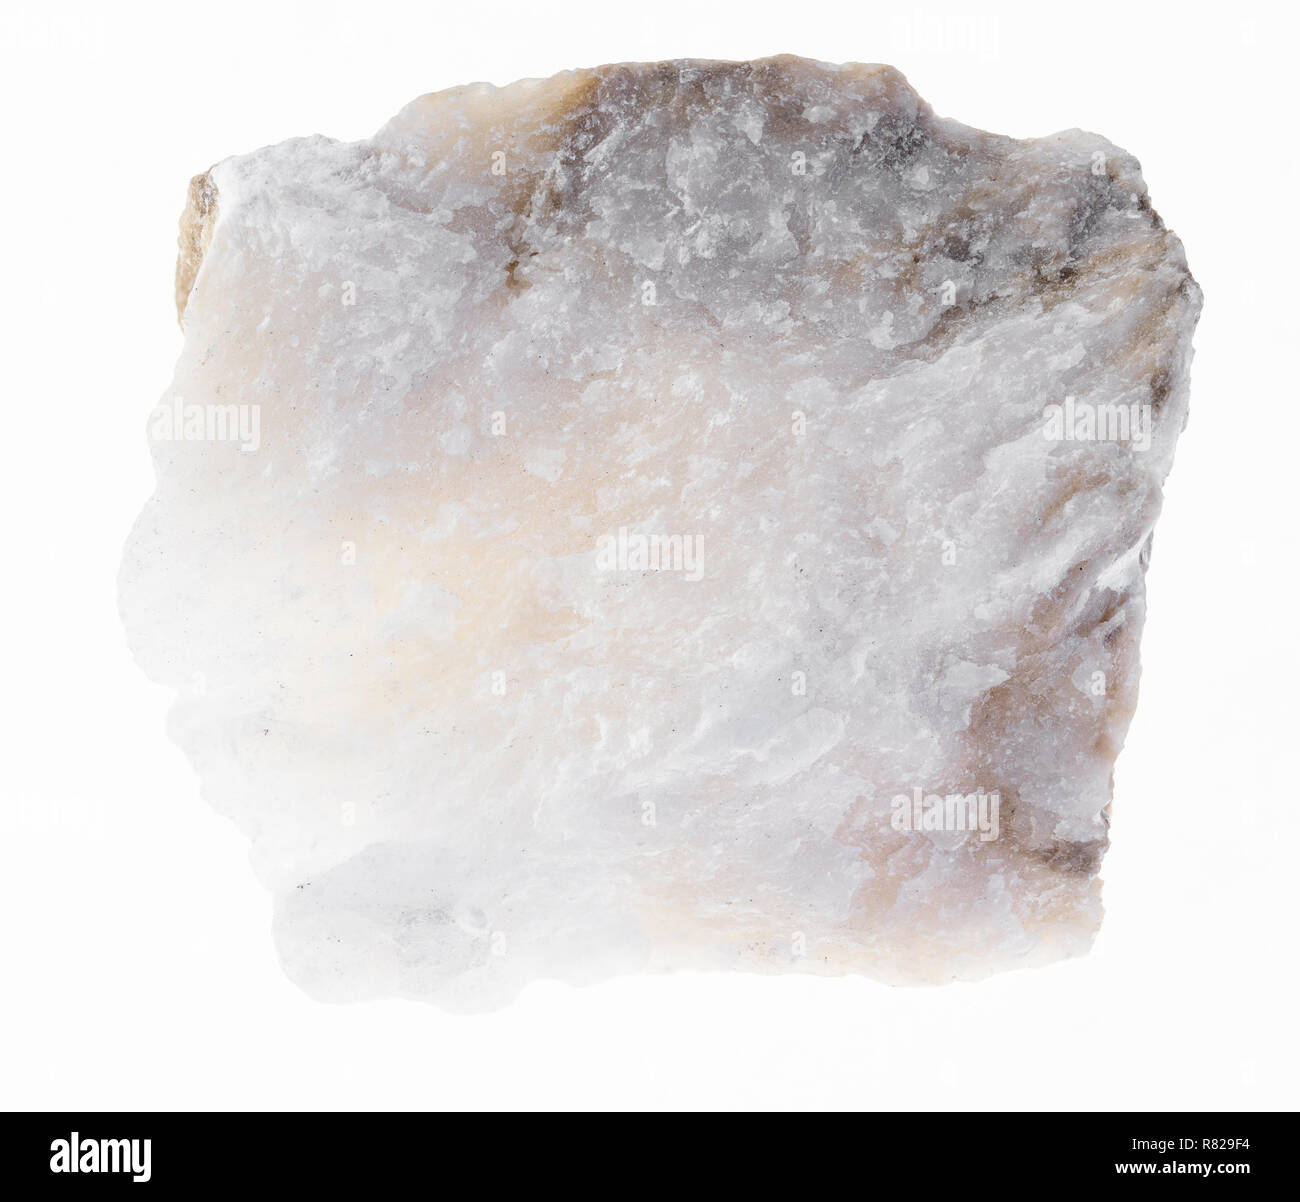 macro photography of natural mineral from geological collection - rough Anhydrite stone on white background Stock Photo